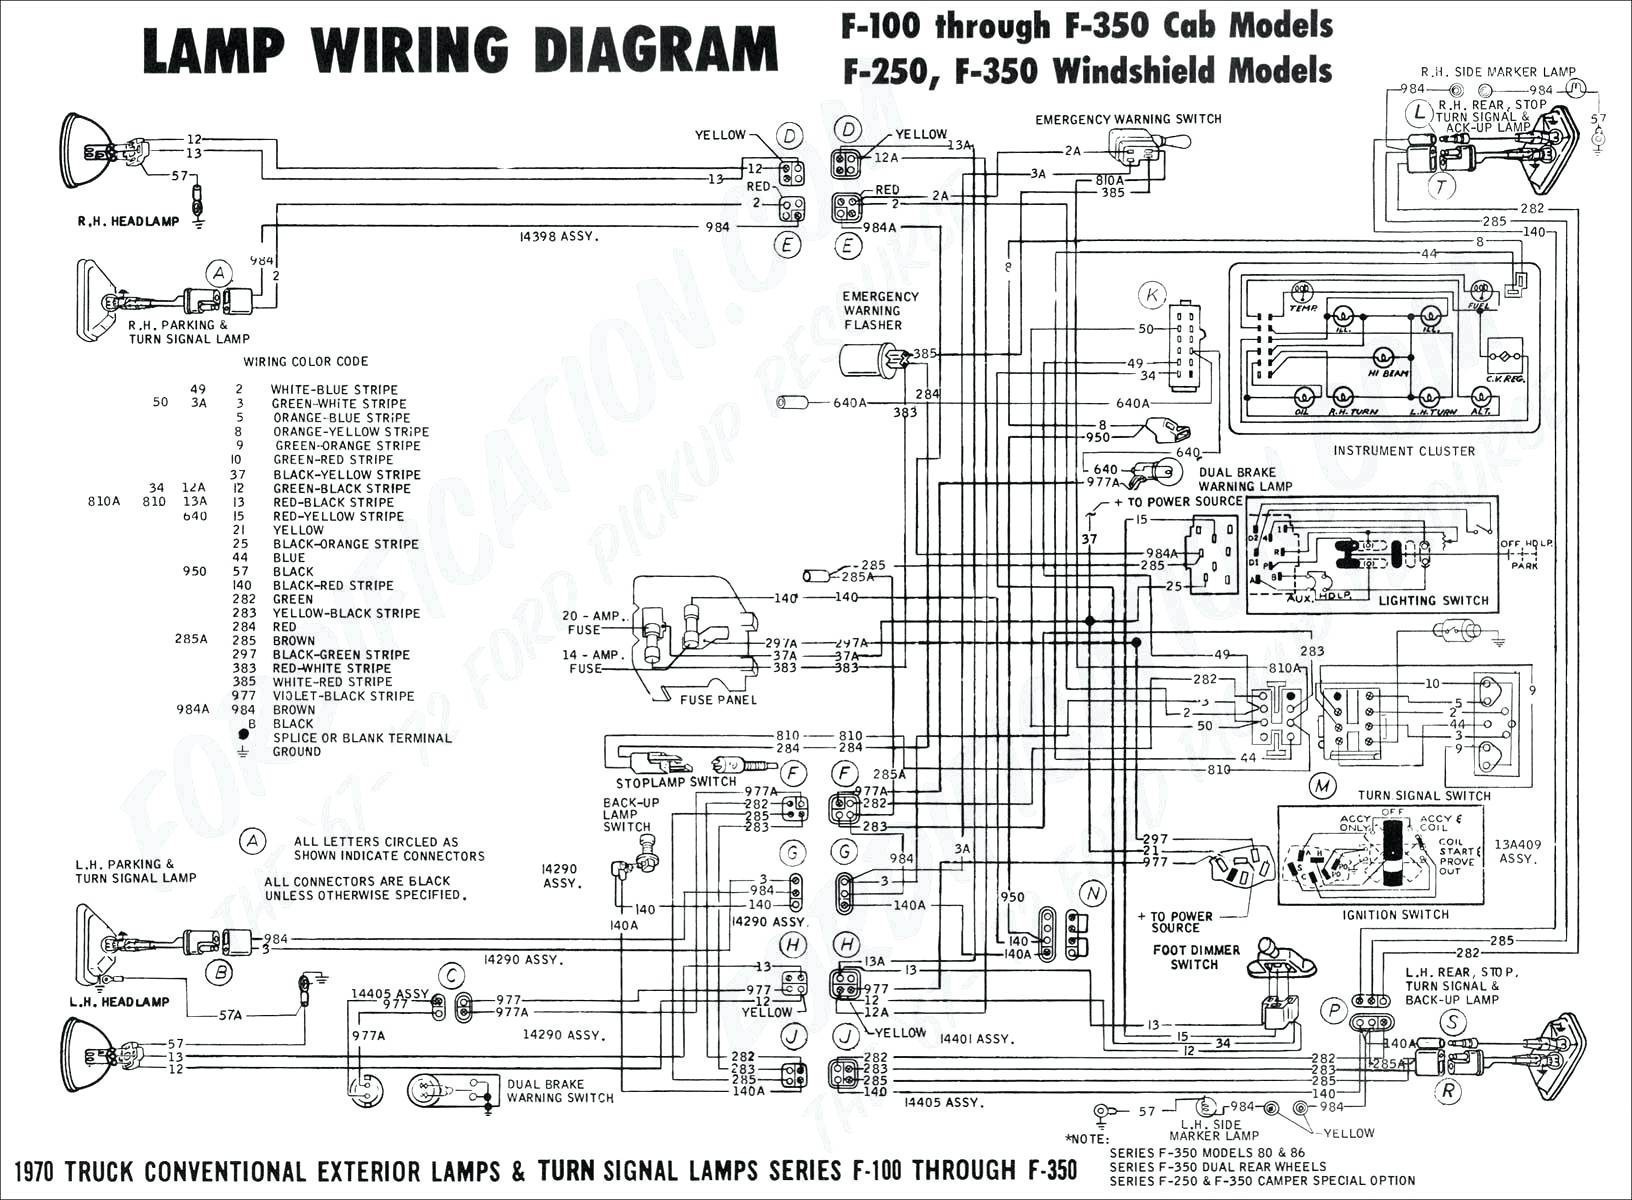 Wiring Diagram For Light With Switch Top Rated Gm Best Brake Pedal All Headlight